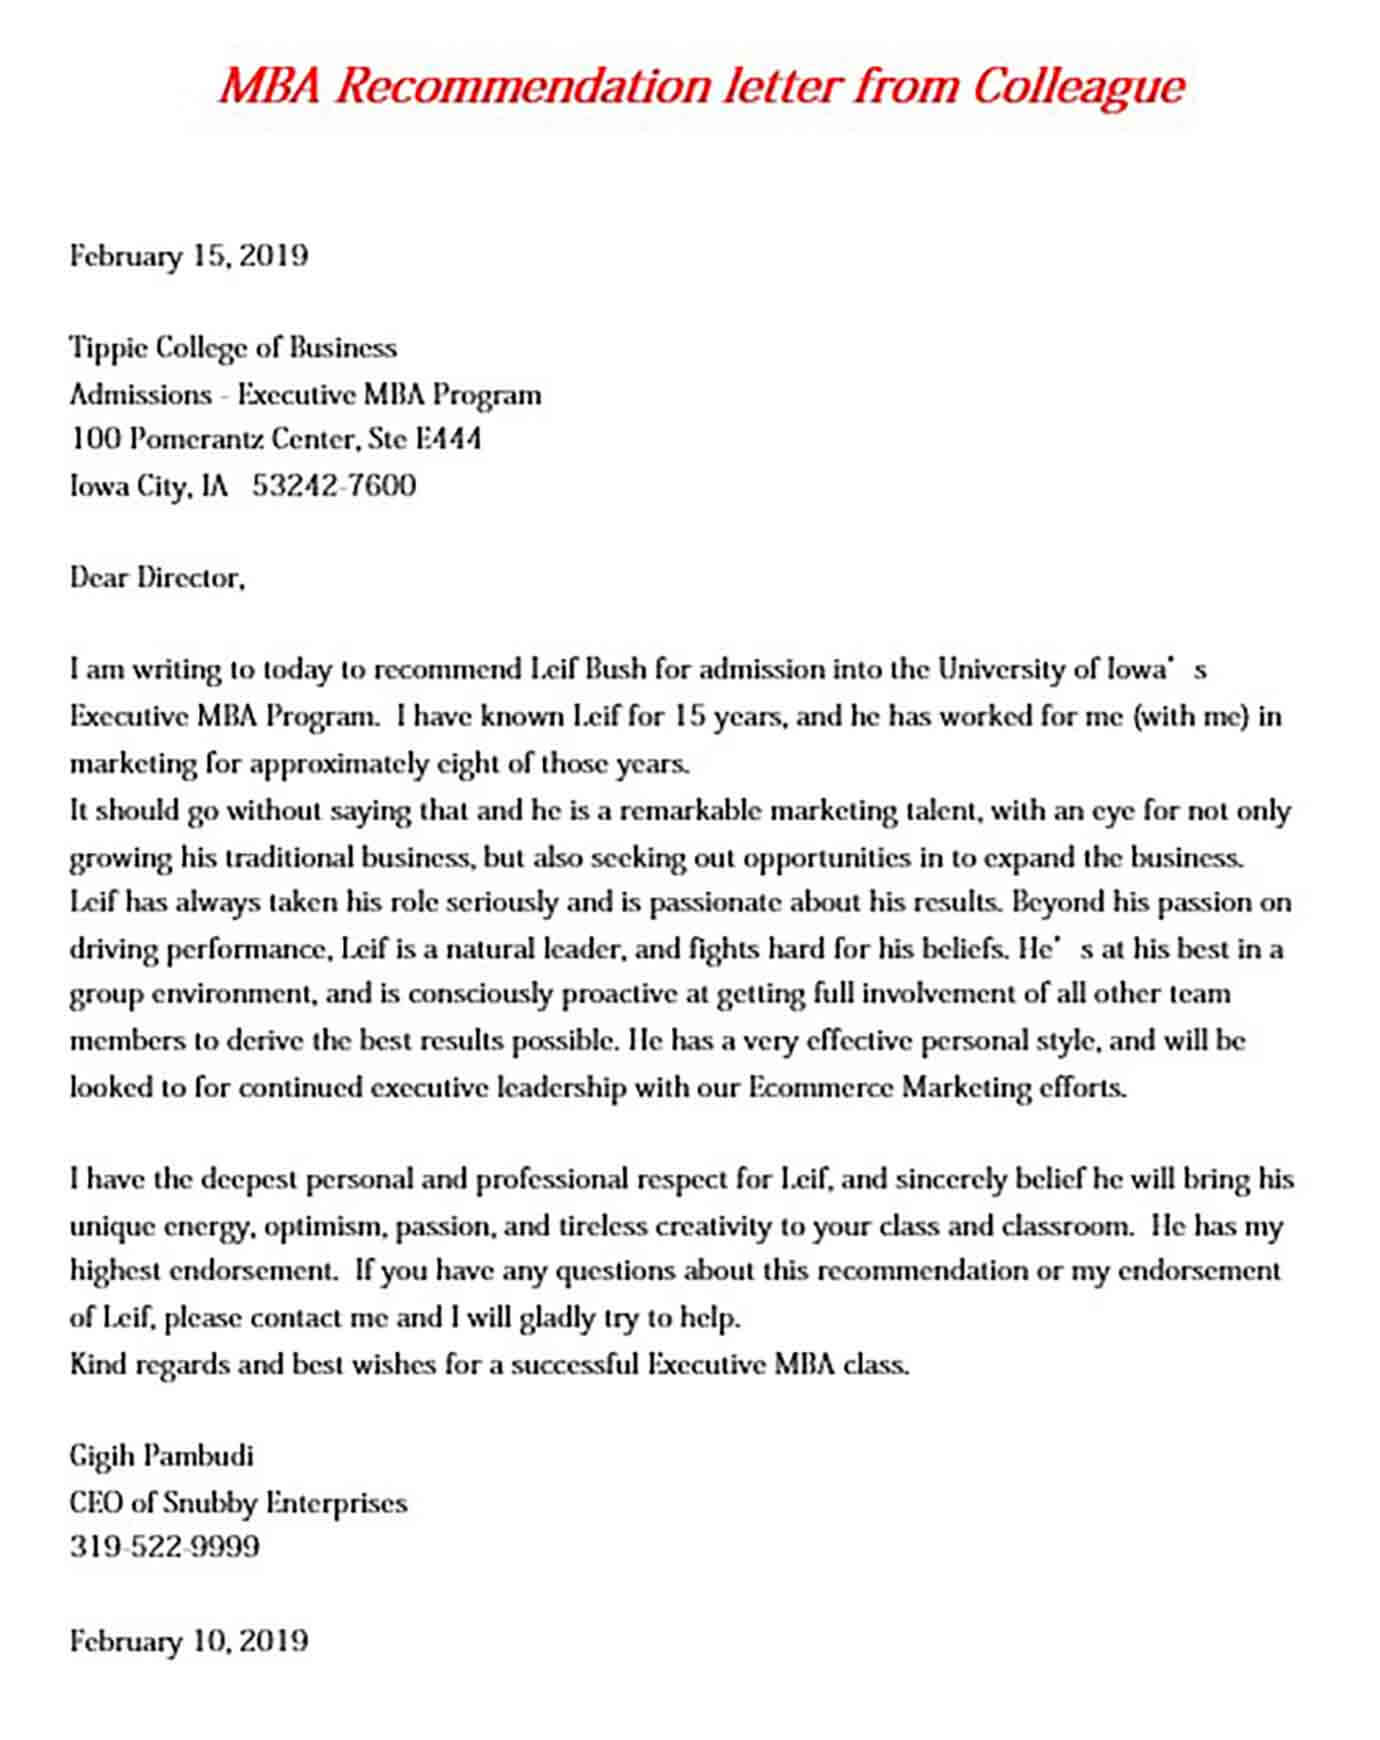 MBA Recommendation letter from Colleague